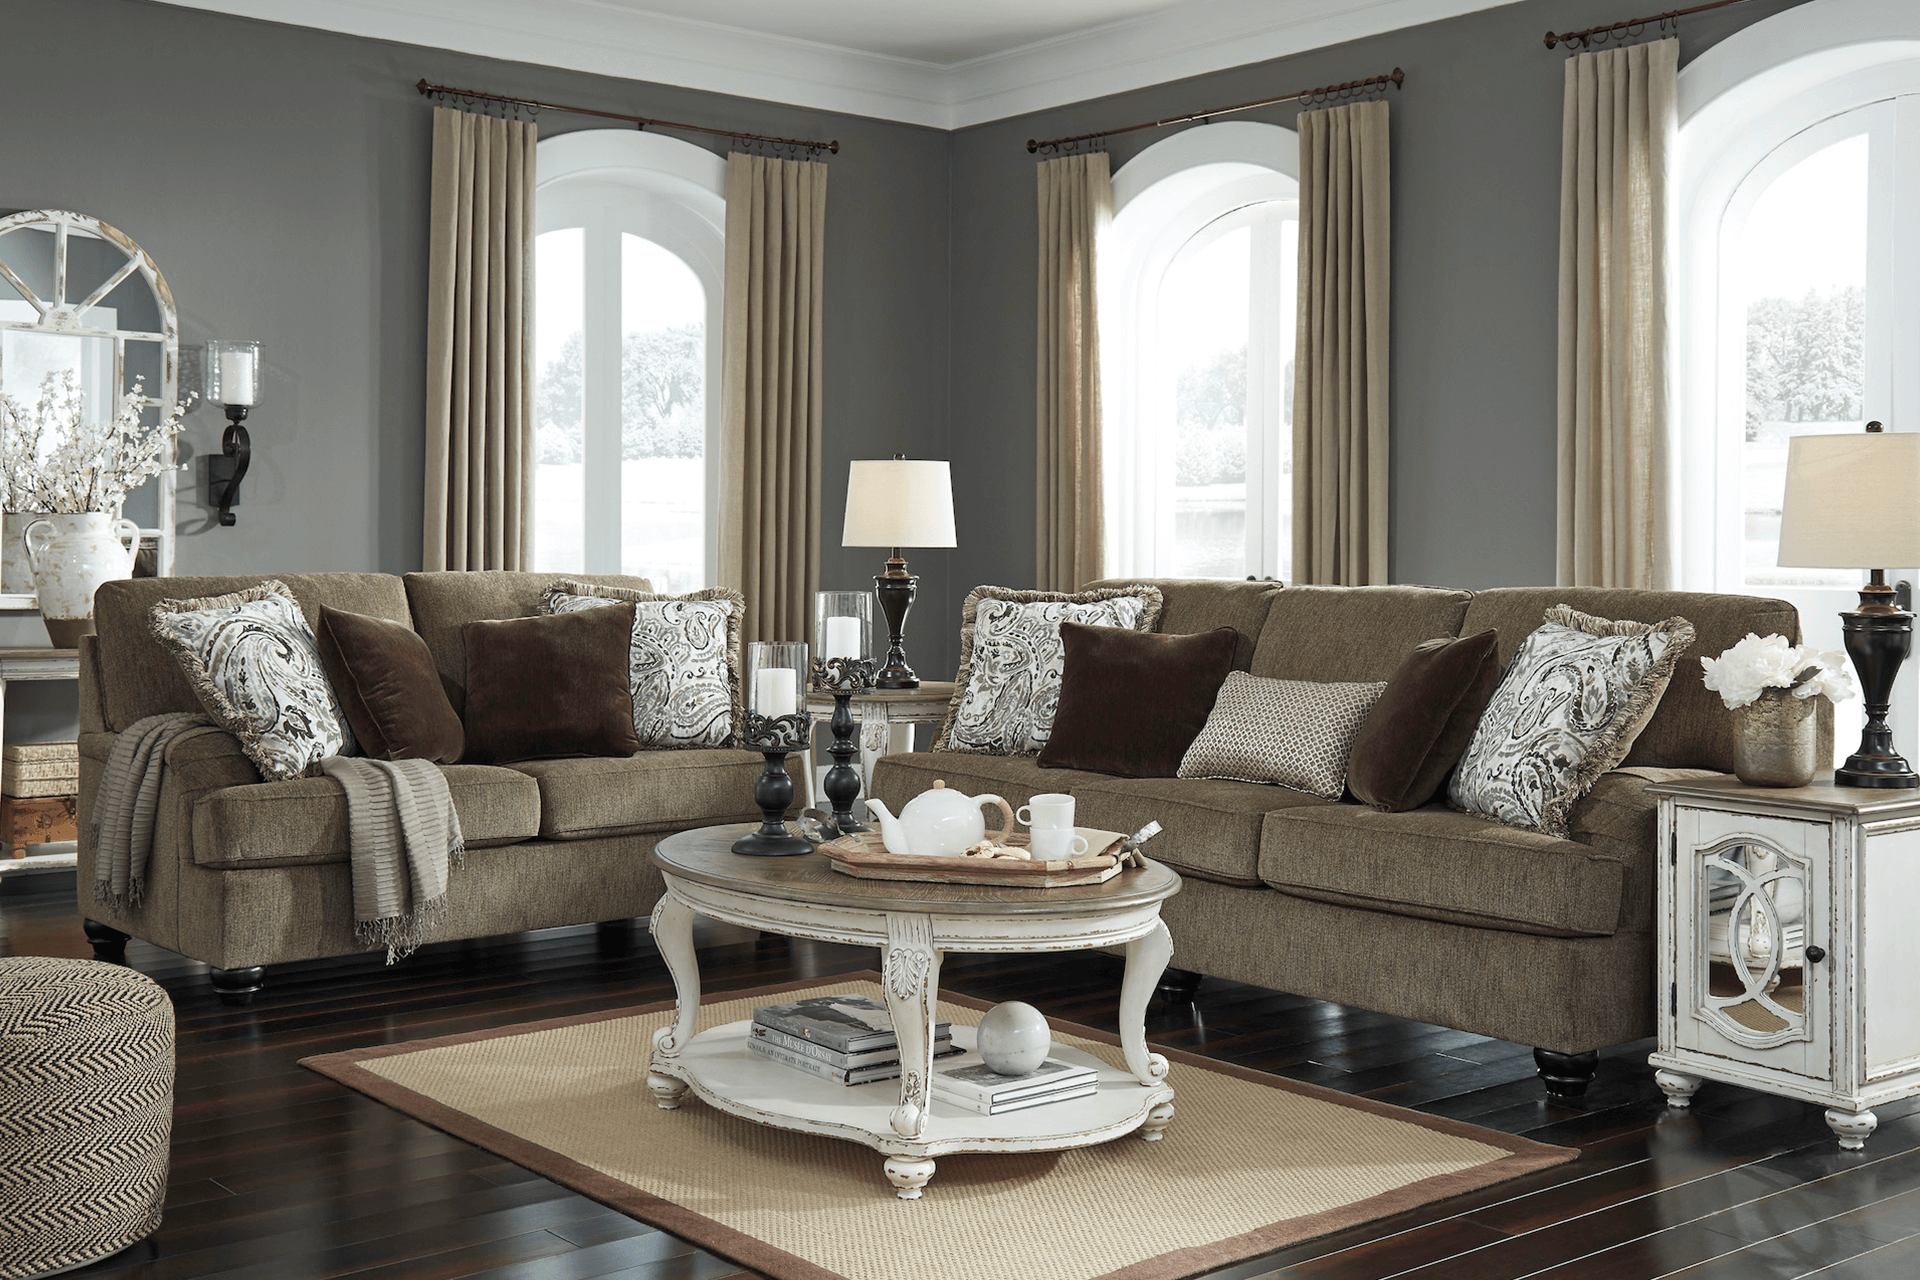 Atlantic_Furniture-Sofa_Sets-40901_w_T743_hi-res